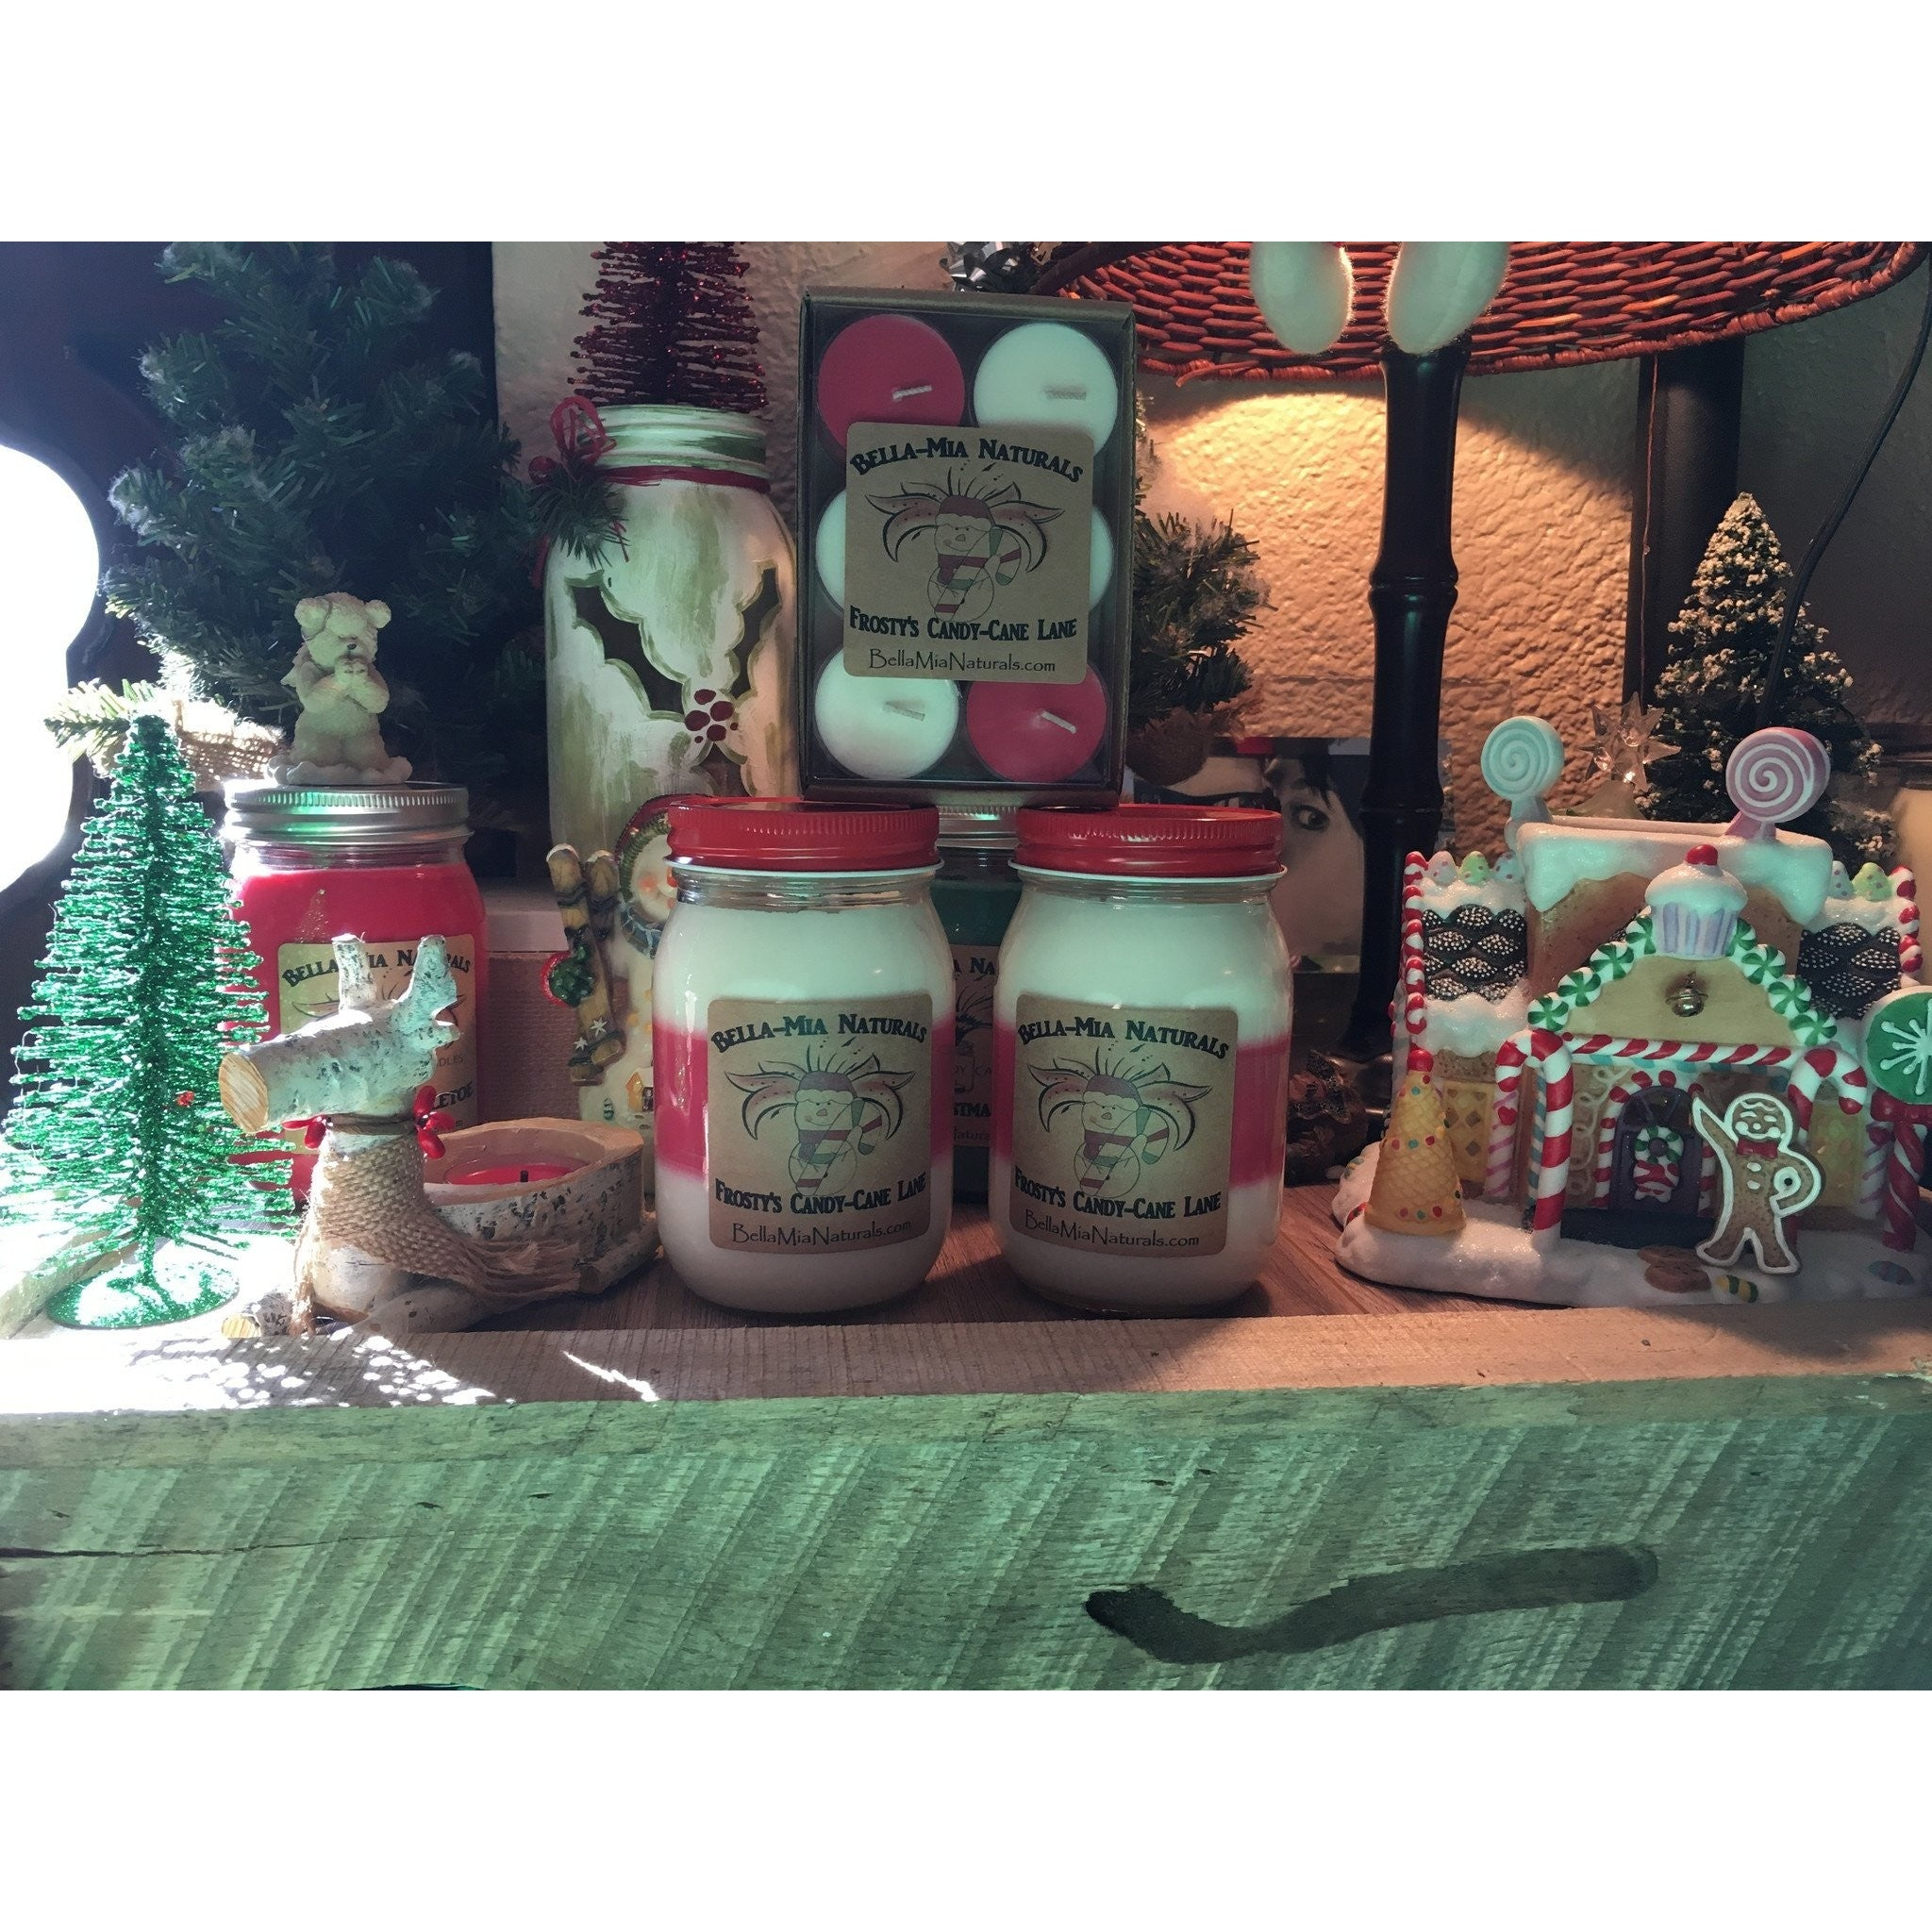 Frosty's Candy-Cane Lane Natural Hand Poured Soy Candles -  - Bella-Mia Naturals All Natural Soy Candles & Lip Balms - 1